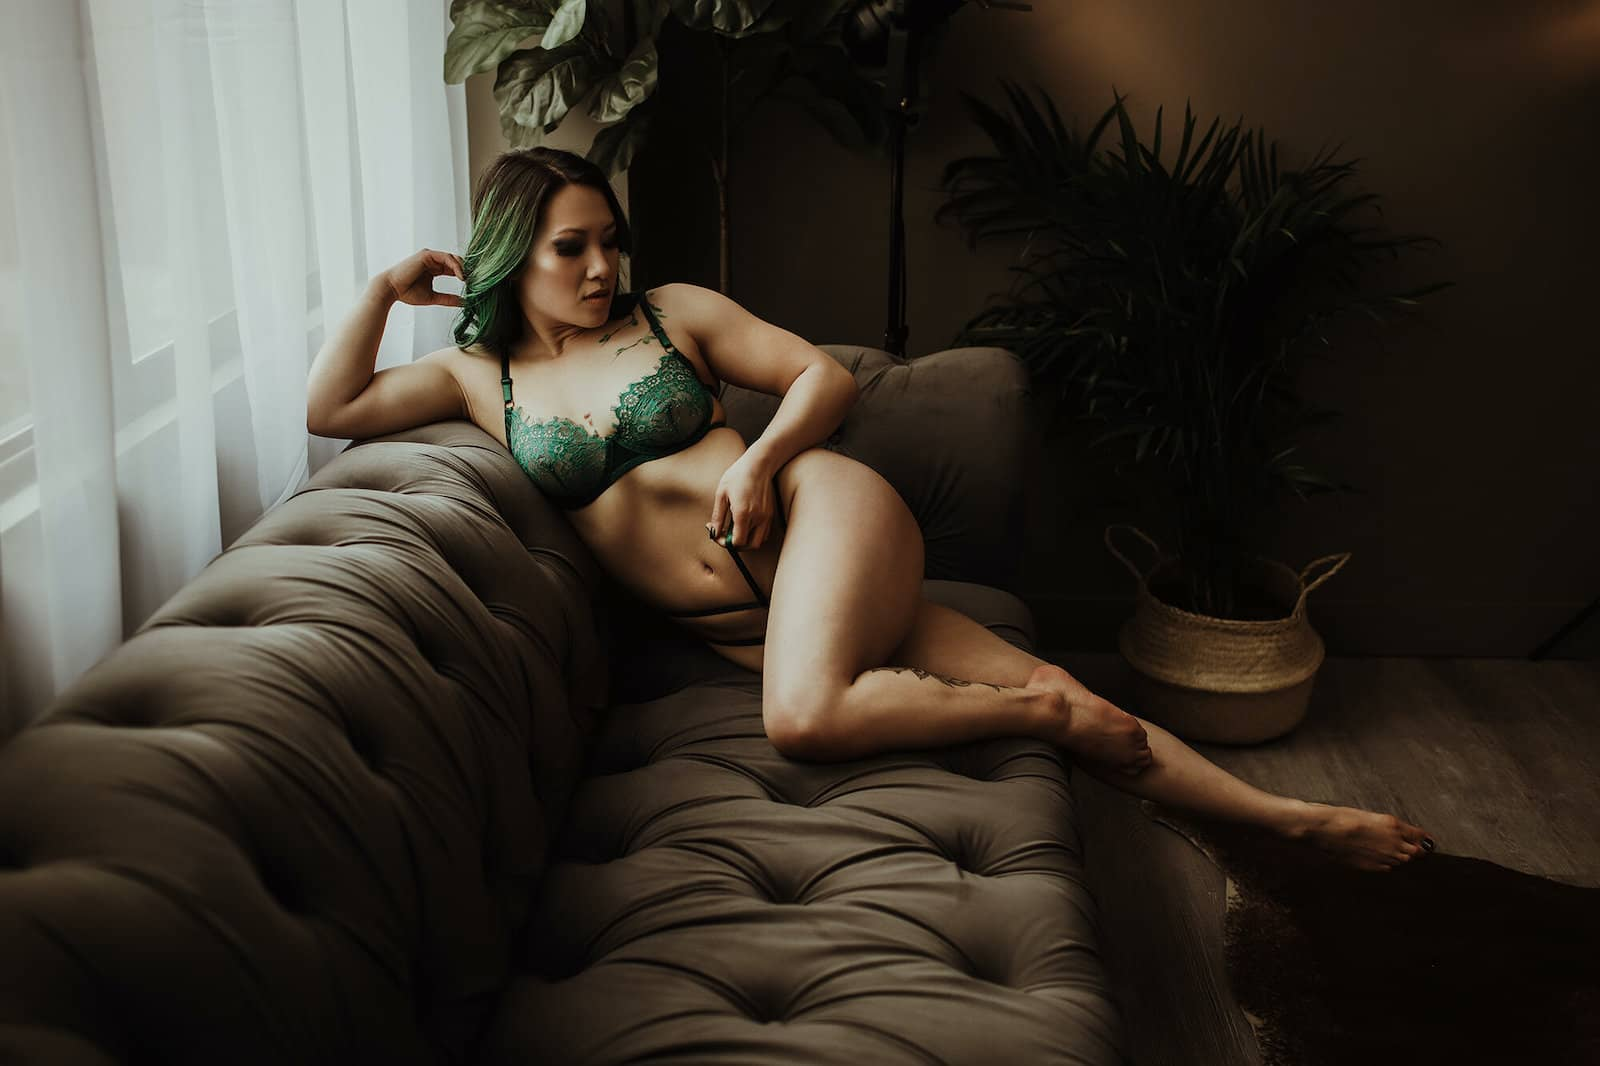 Boudoir Photography Definition - What is Boudoir Photography Meaning